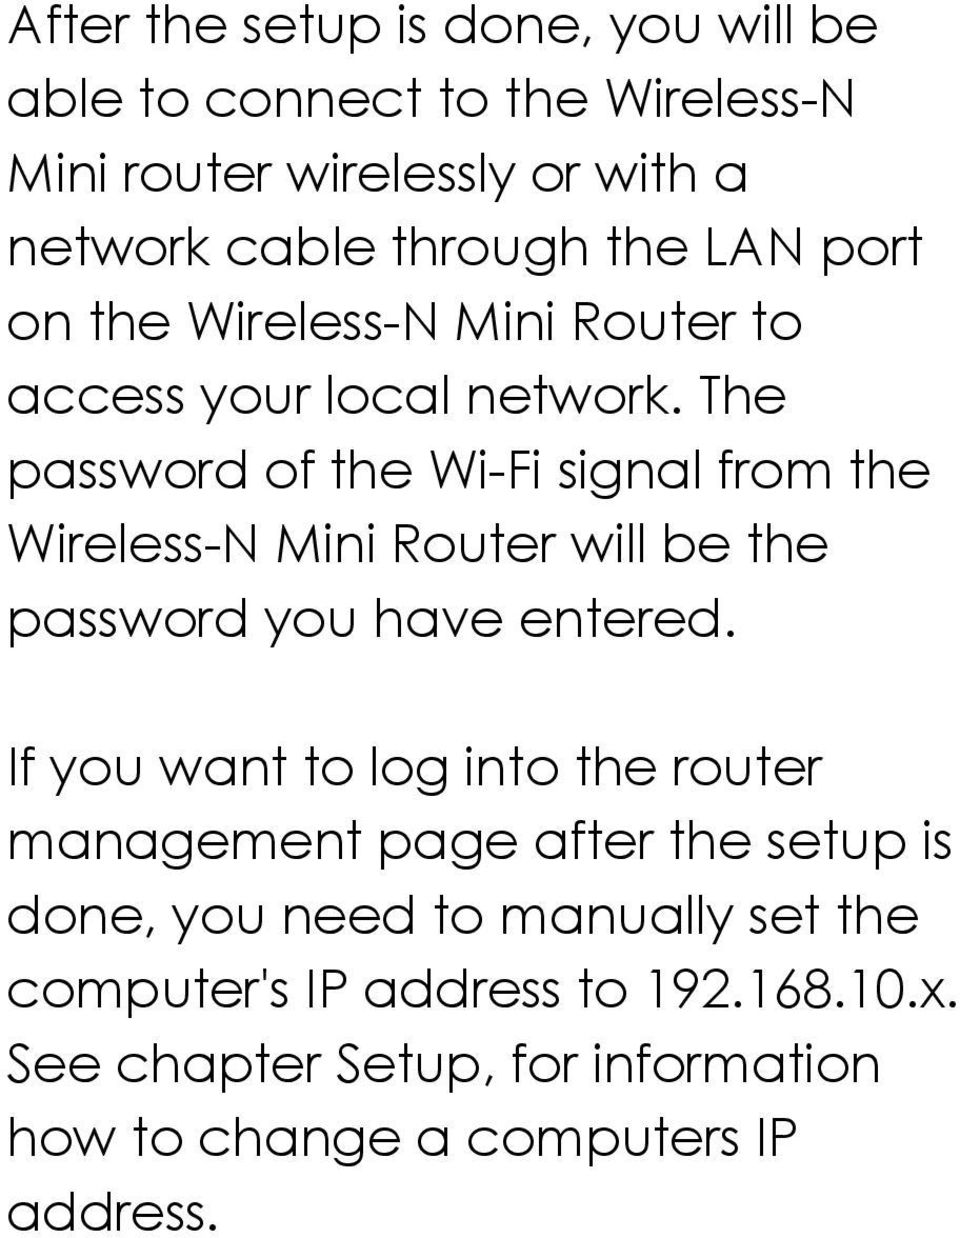 The password of the Wi-Fi signal from the Wireless-N Mini Router will be the password you have entered.